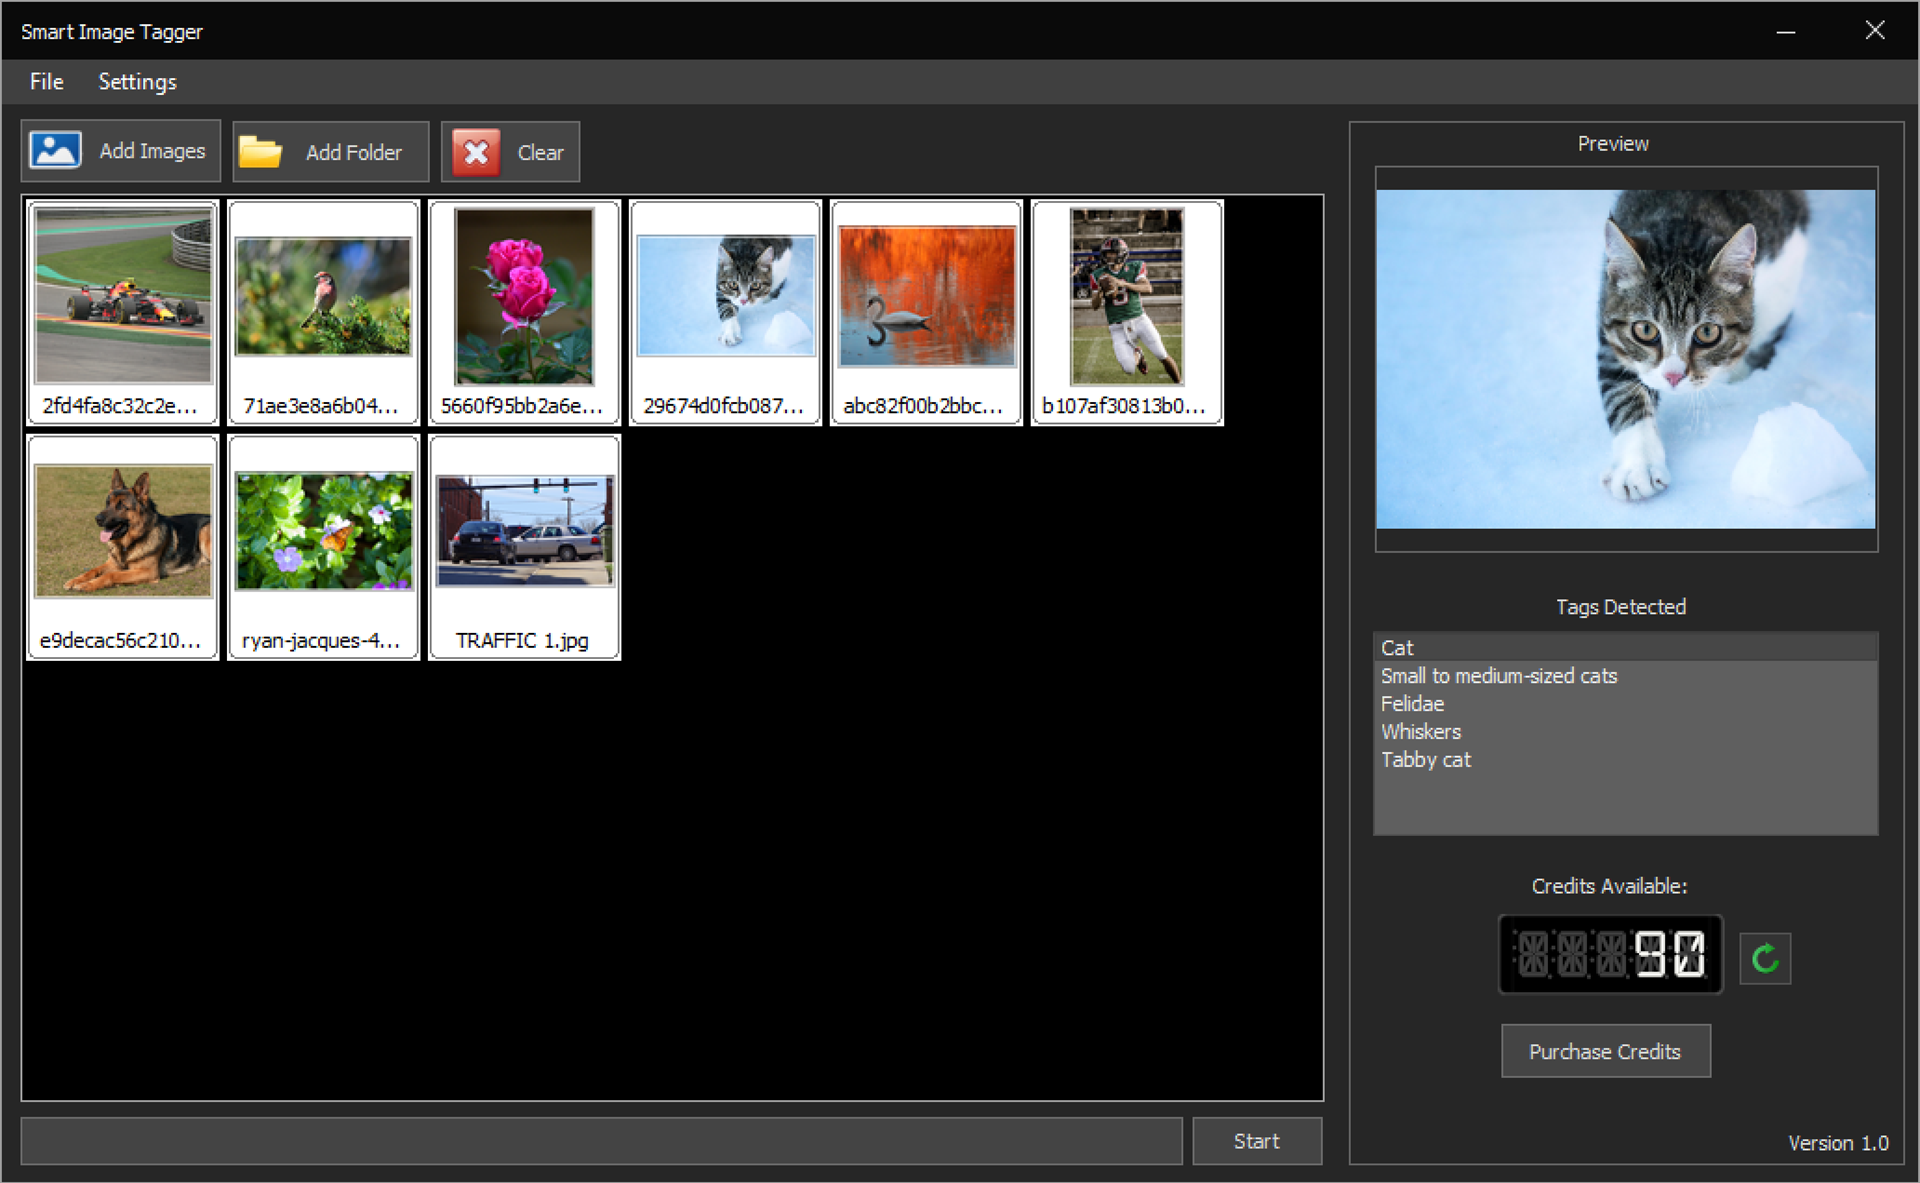 Smart Image Tagger Screenshot